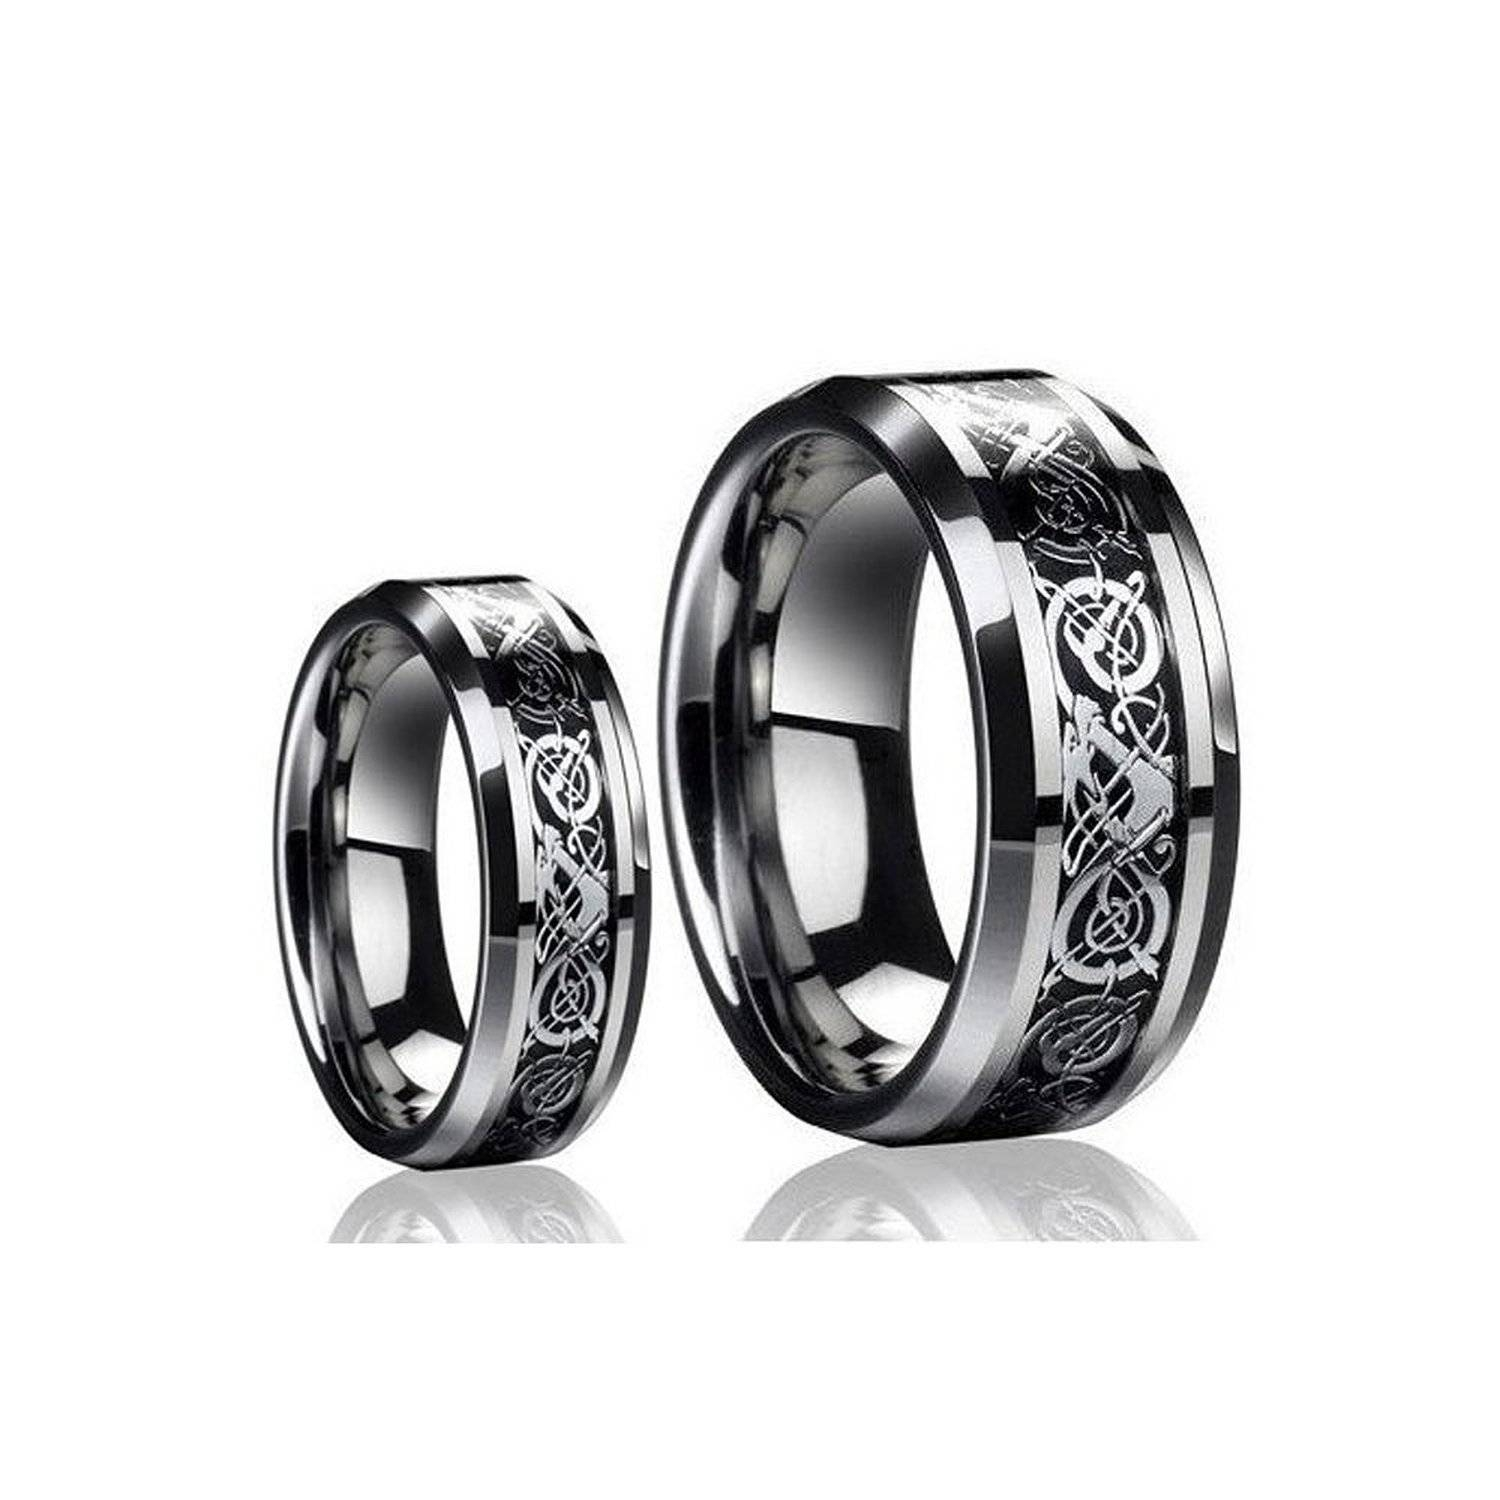 Black Titanium Wedding Band Sets, Black Wedding Band Sets Throughout Black Titanium Wedding Bands Sets (View 2 of 15)